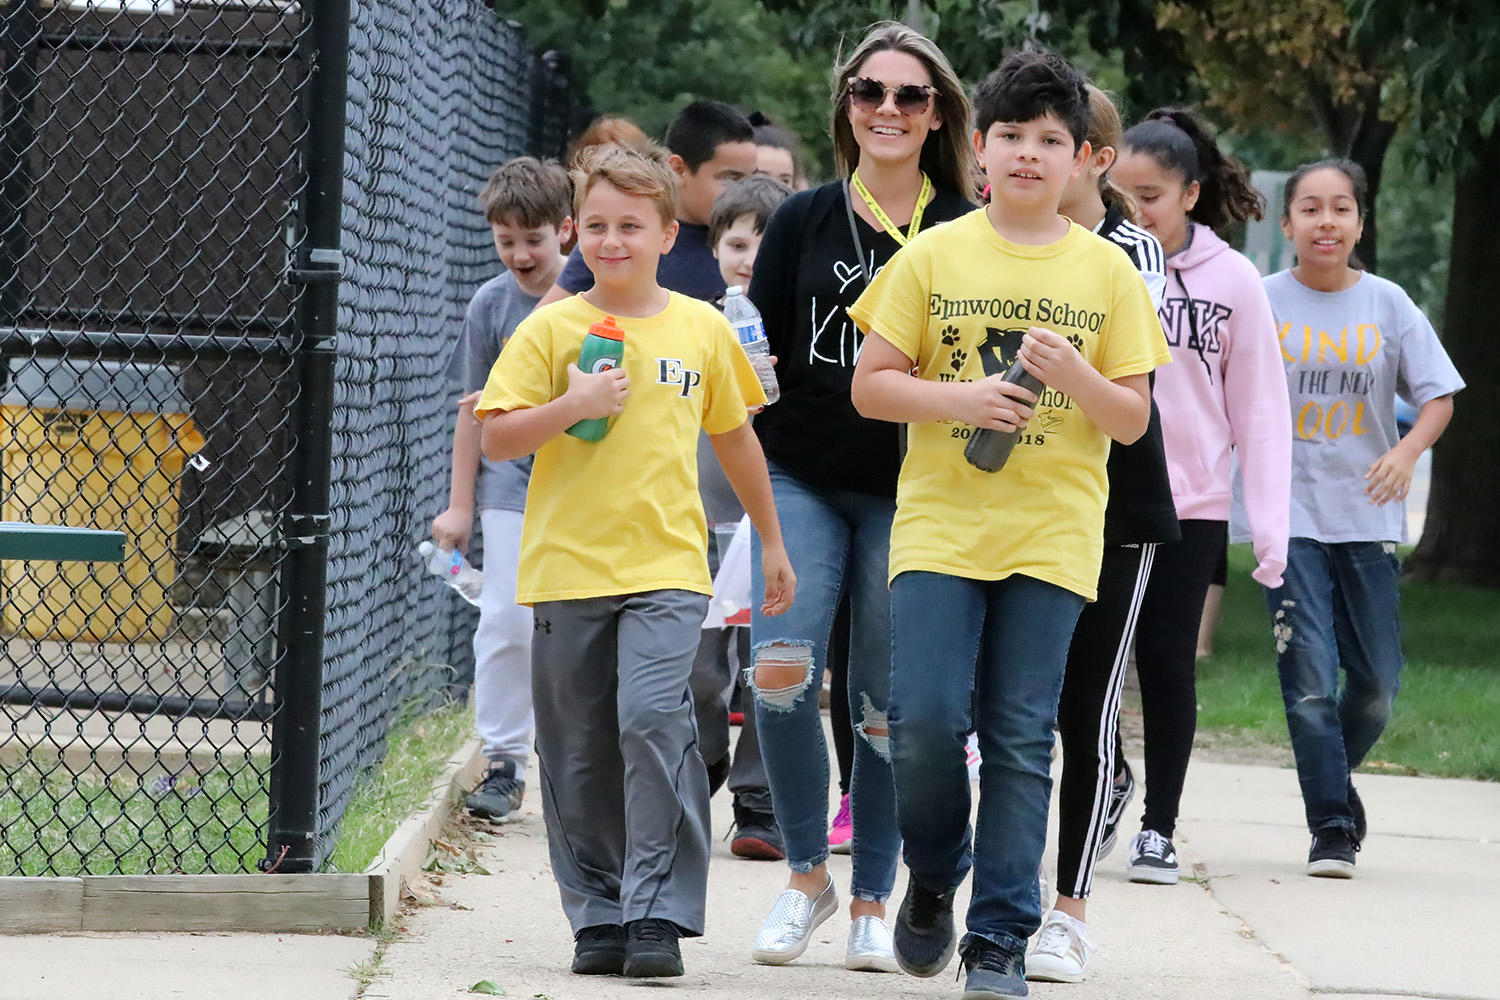 Elmwood students and chaperones participate in the school's PATT Walkathon.